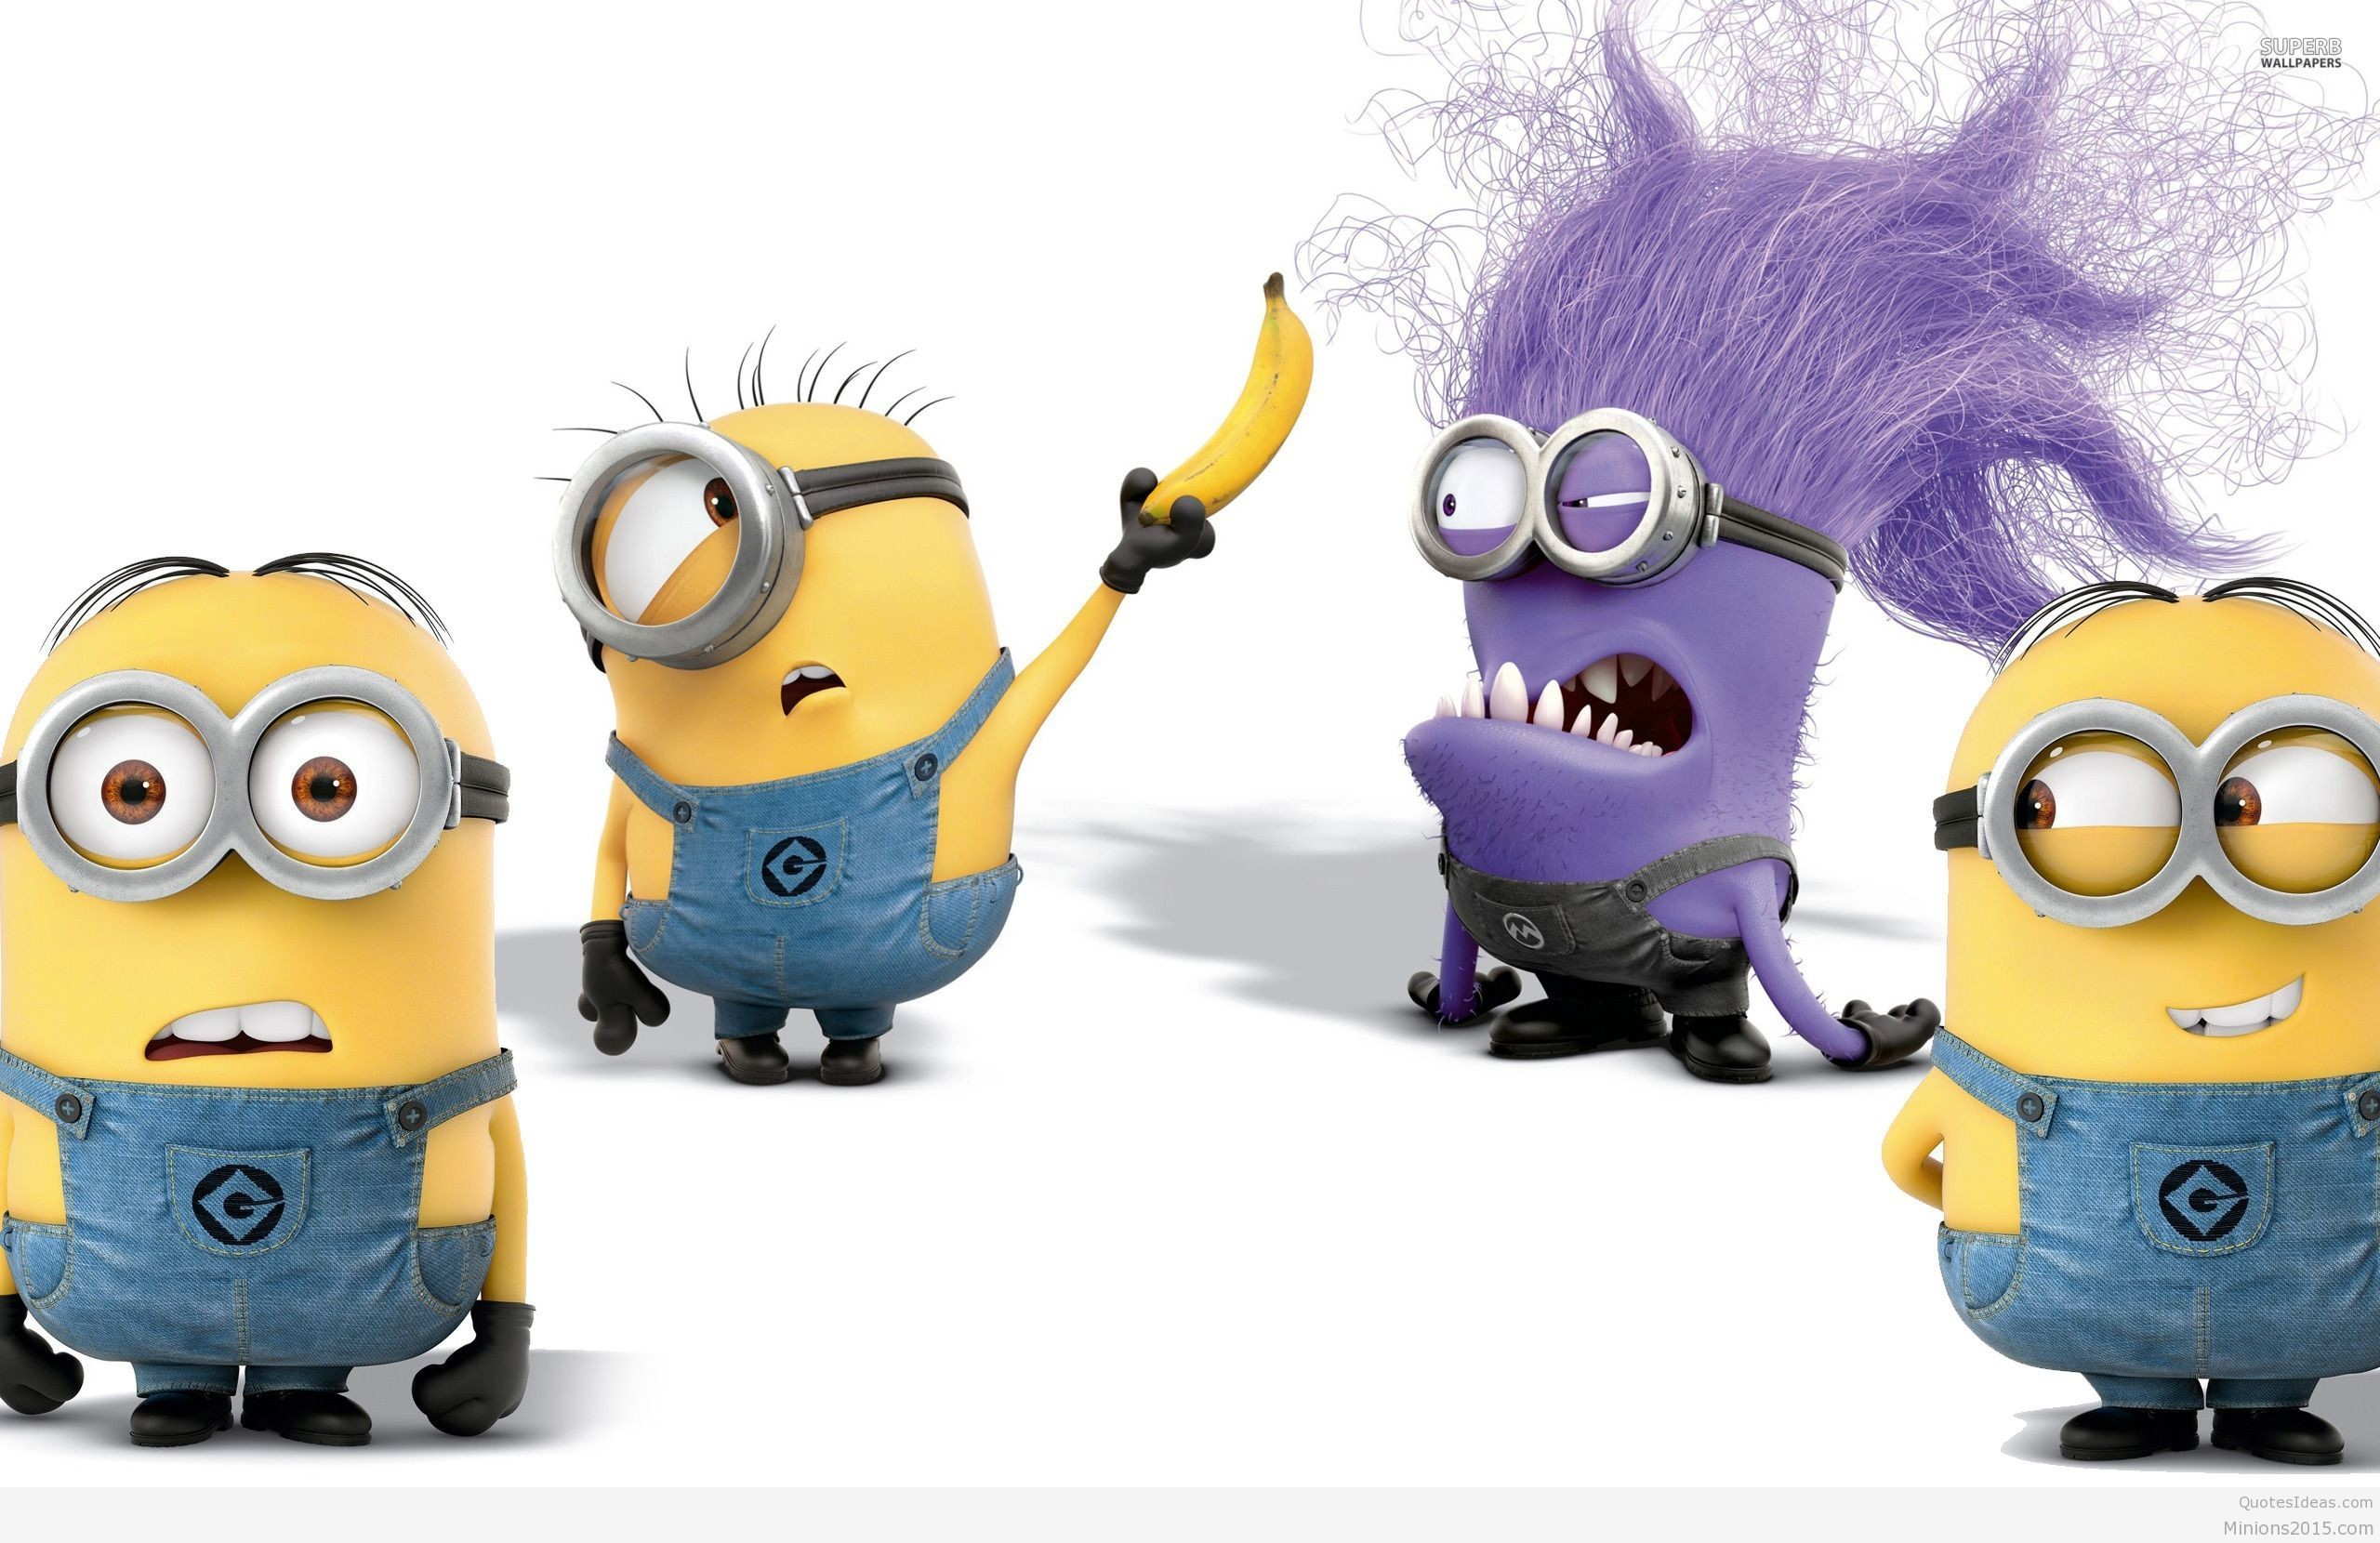 2560x1660 minions-despicable-me-2-wallpapers-funny-movie-images-.  20ce924e1951a97068e052a324368136